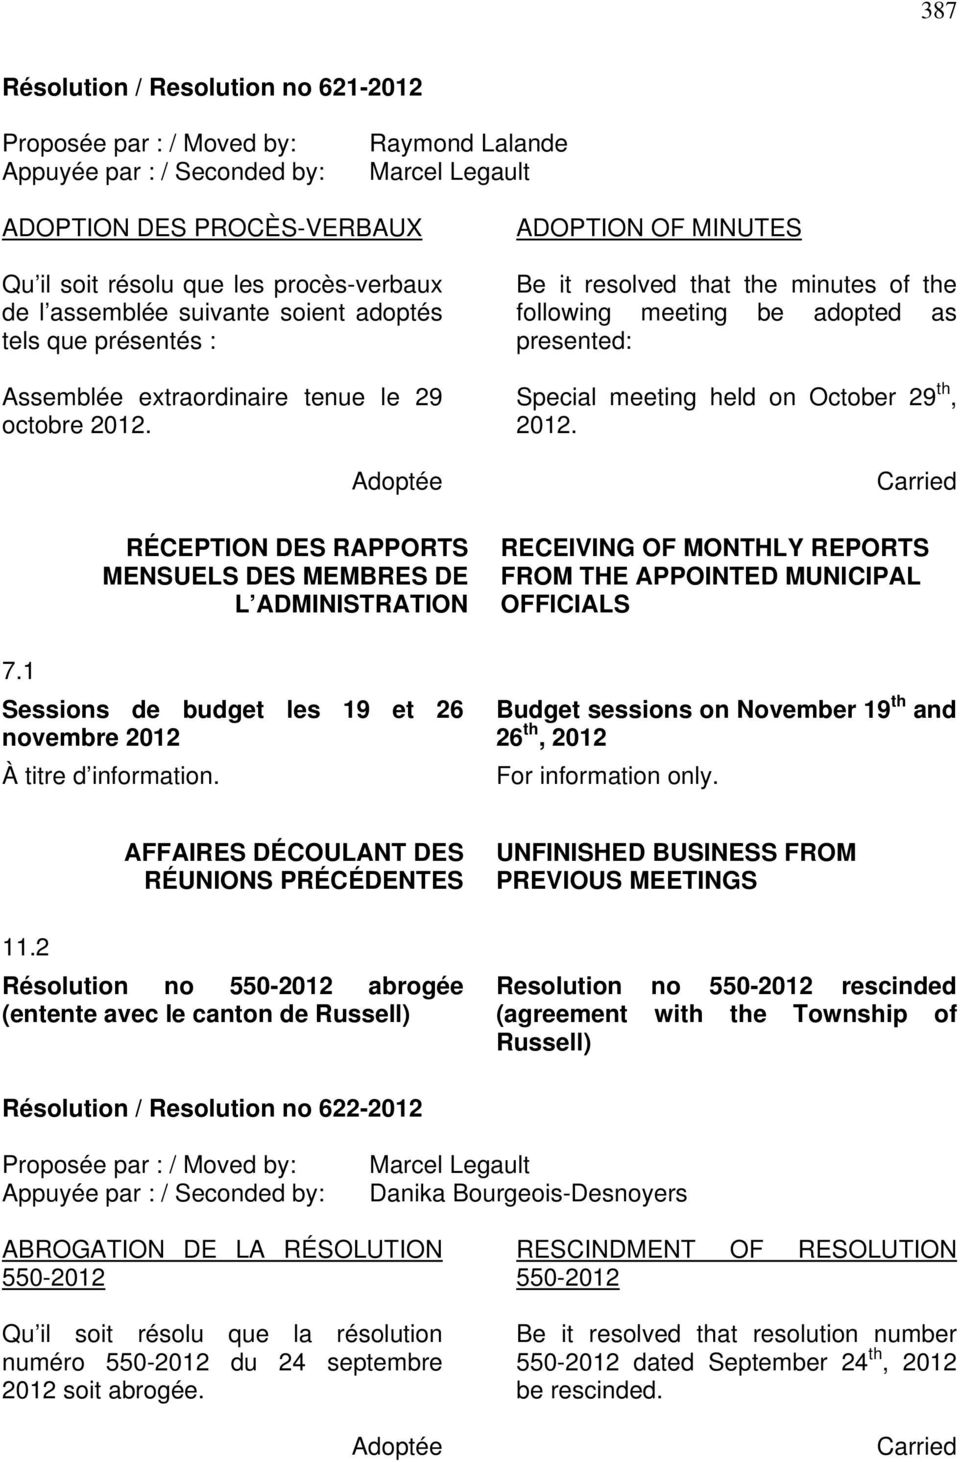 ADOPTION OF MINUTES Be it resolved that the minutes of the following meeting be adopted as presented: Special meeting held on October 29 th, 2012.